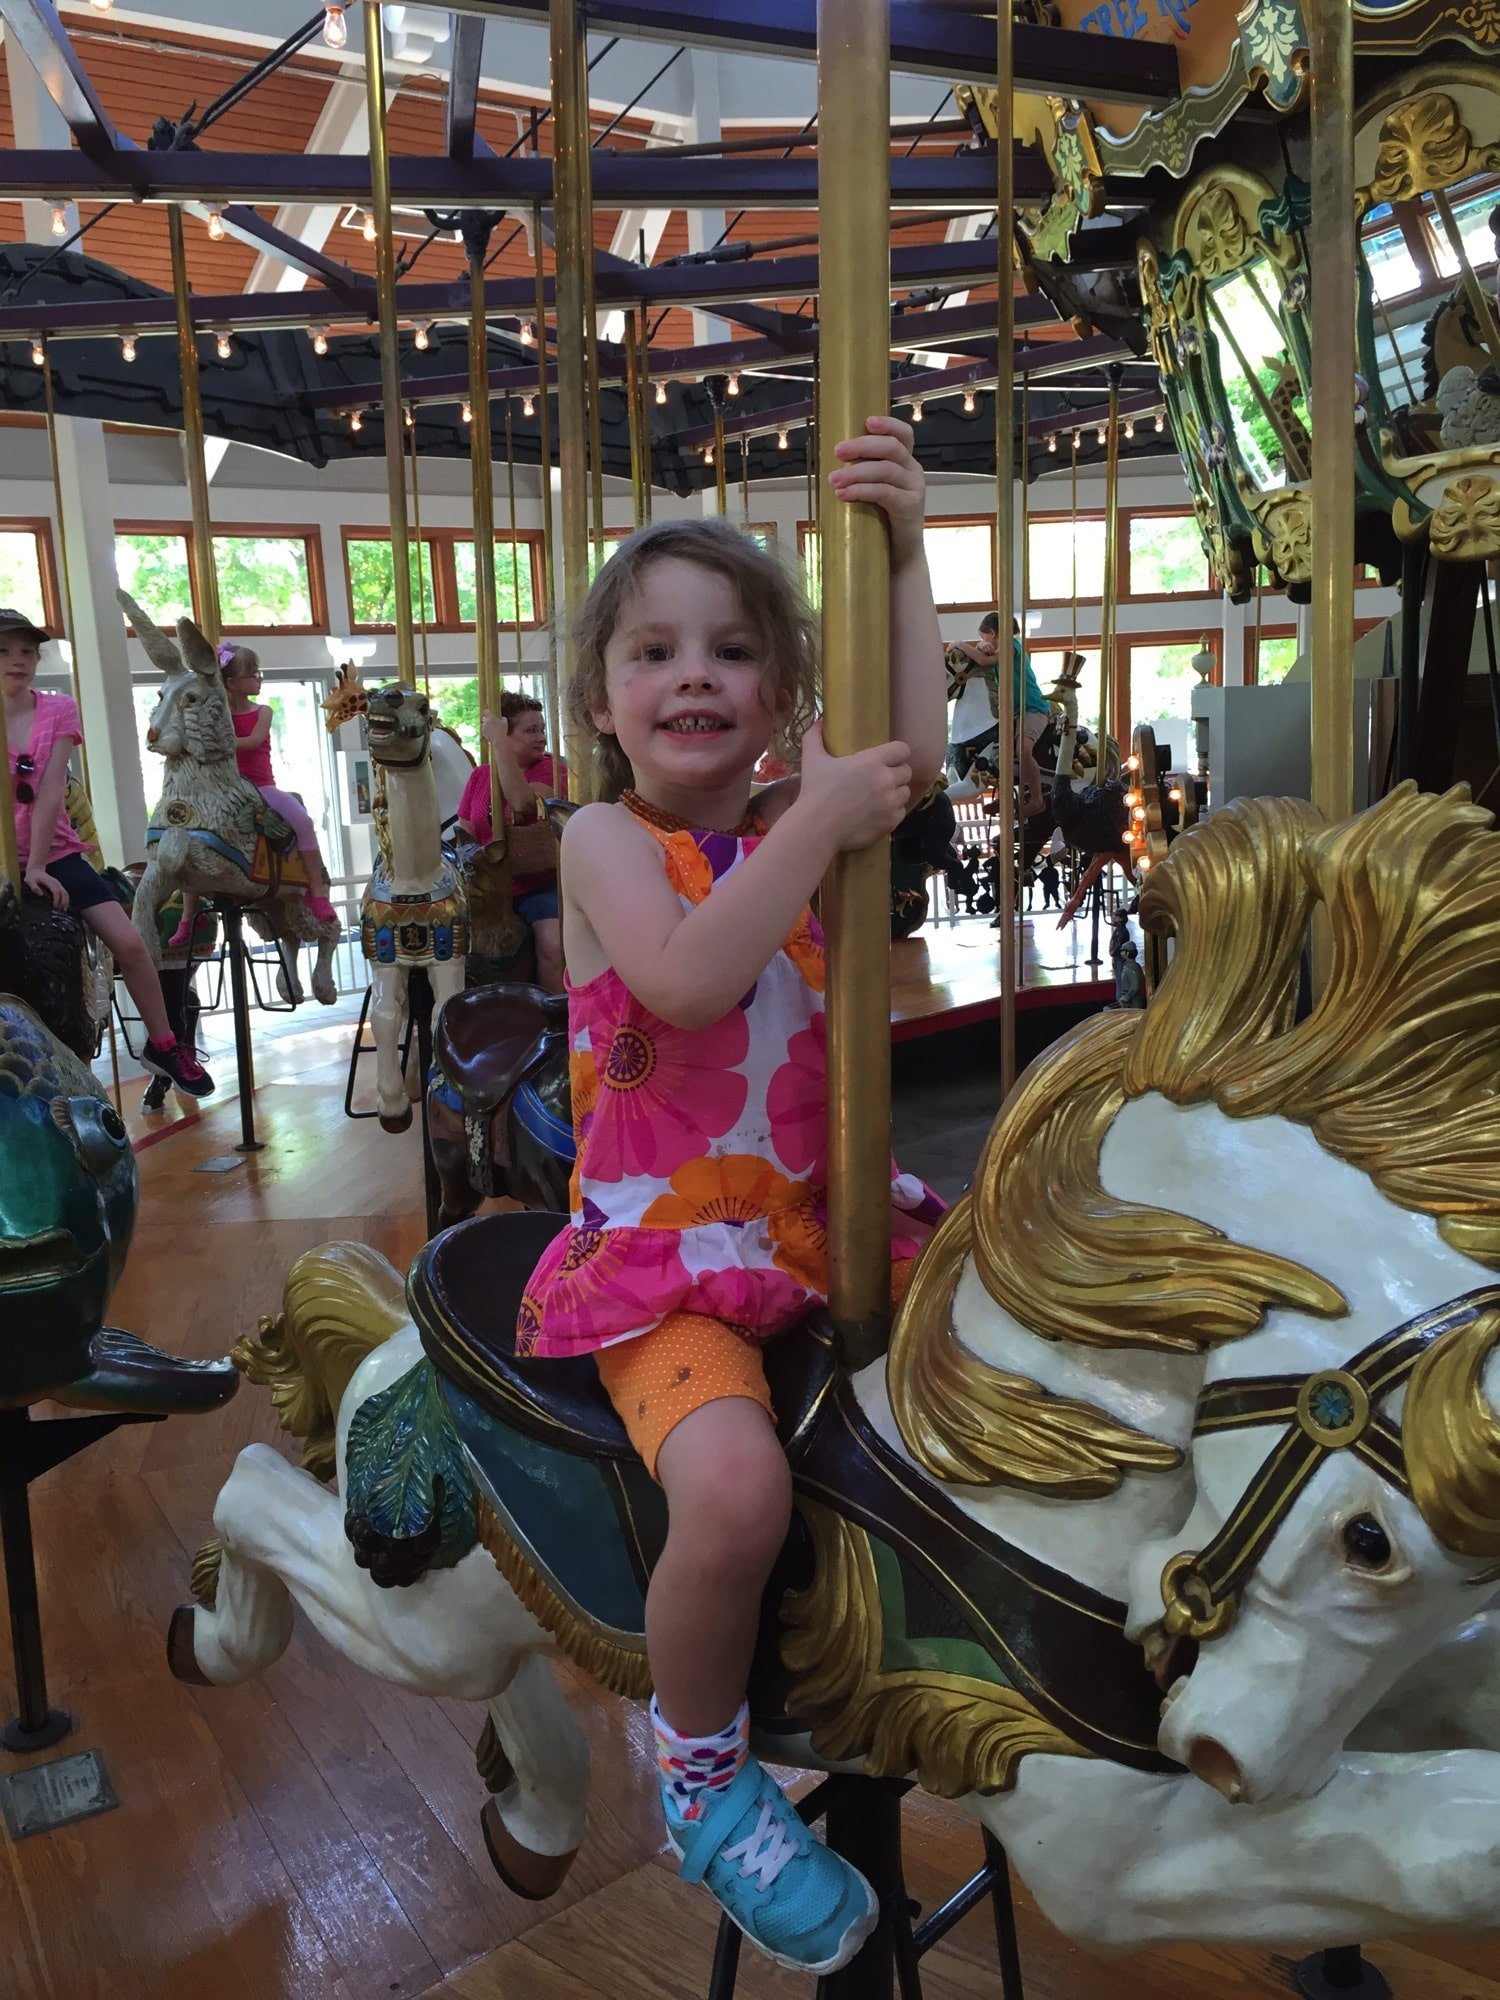 riding carousels